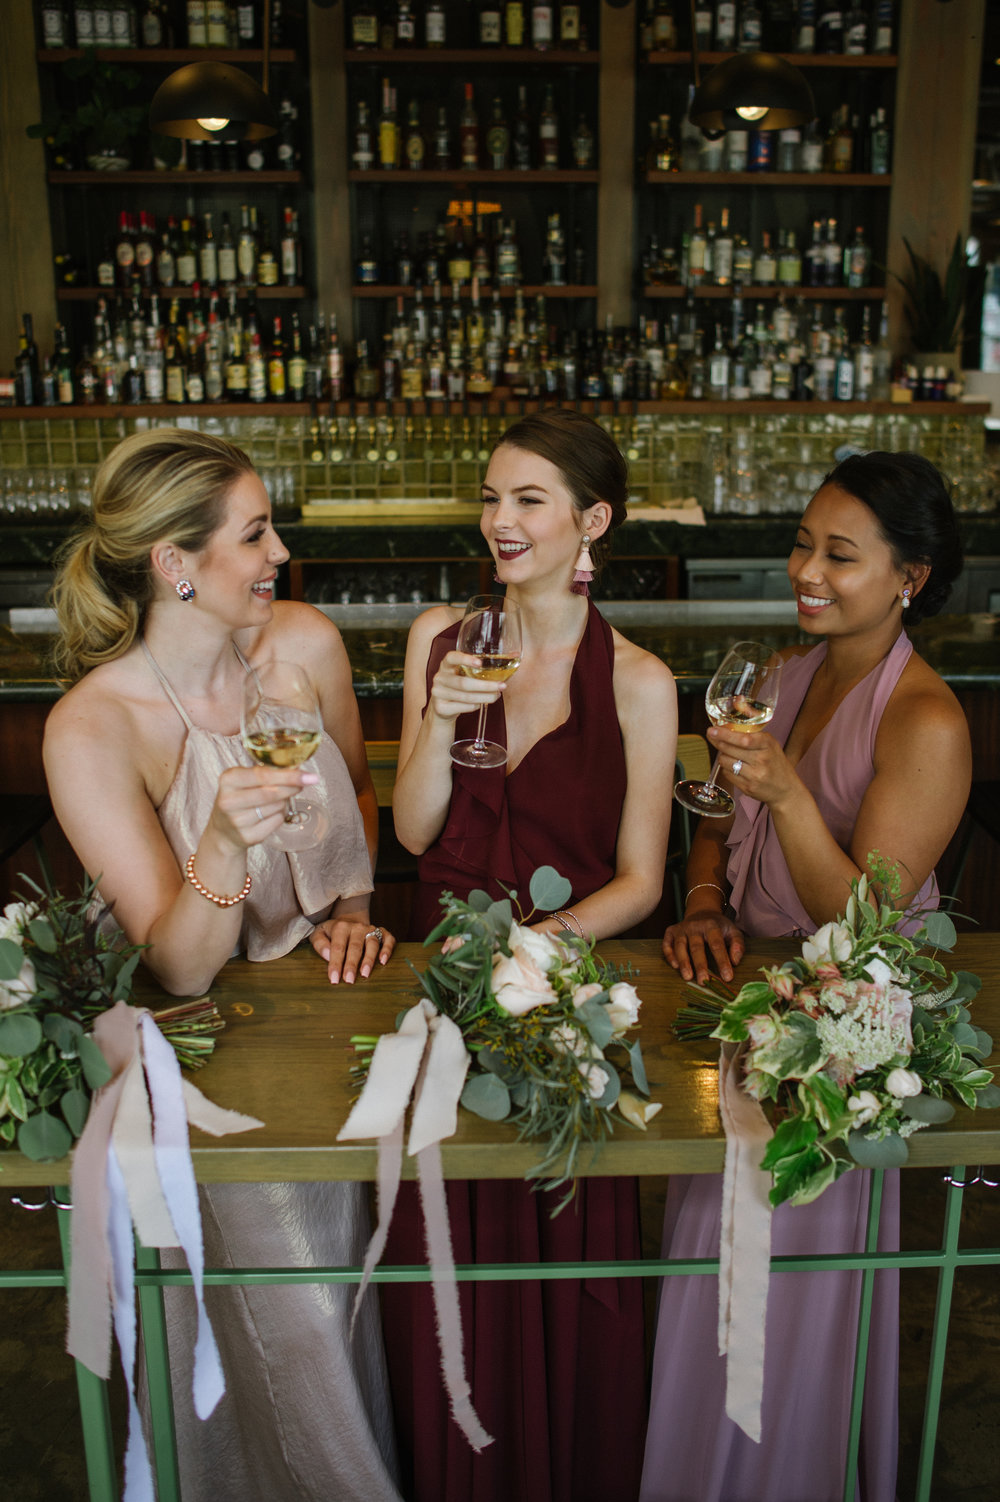 Calgary_Wedding_Photography_Bridgette_Bar_Bridesmaids_Shoot_2018_HR058.jpg